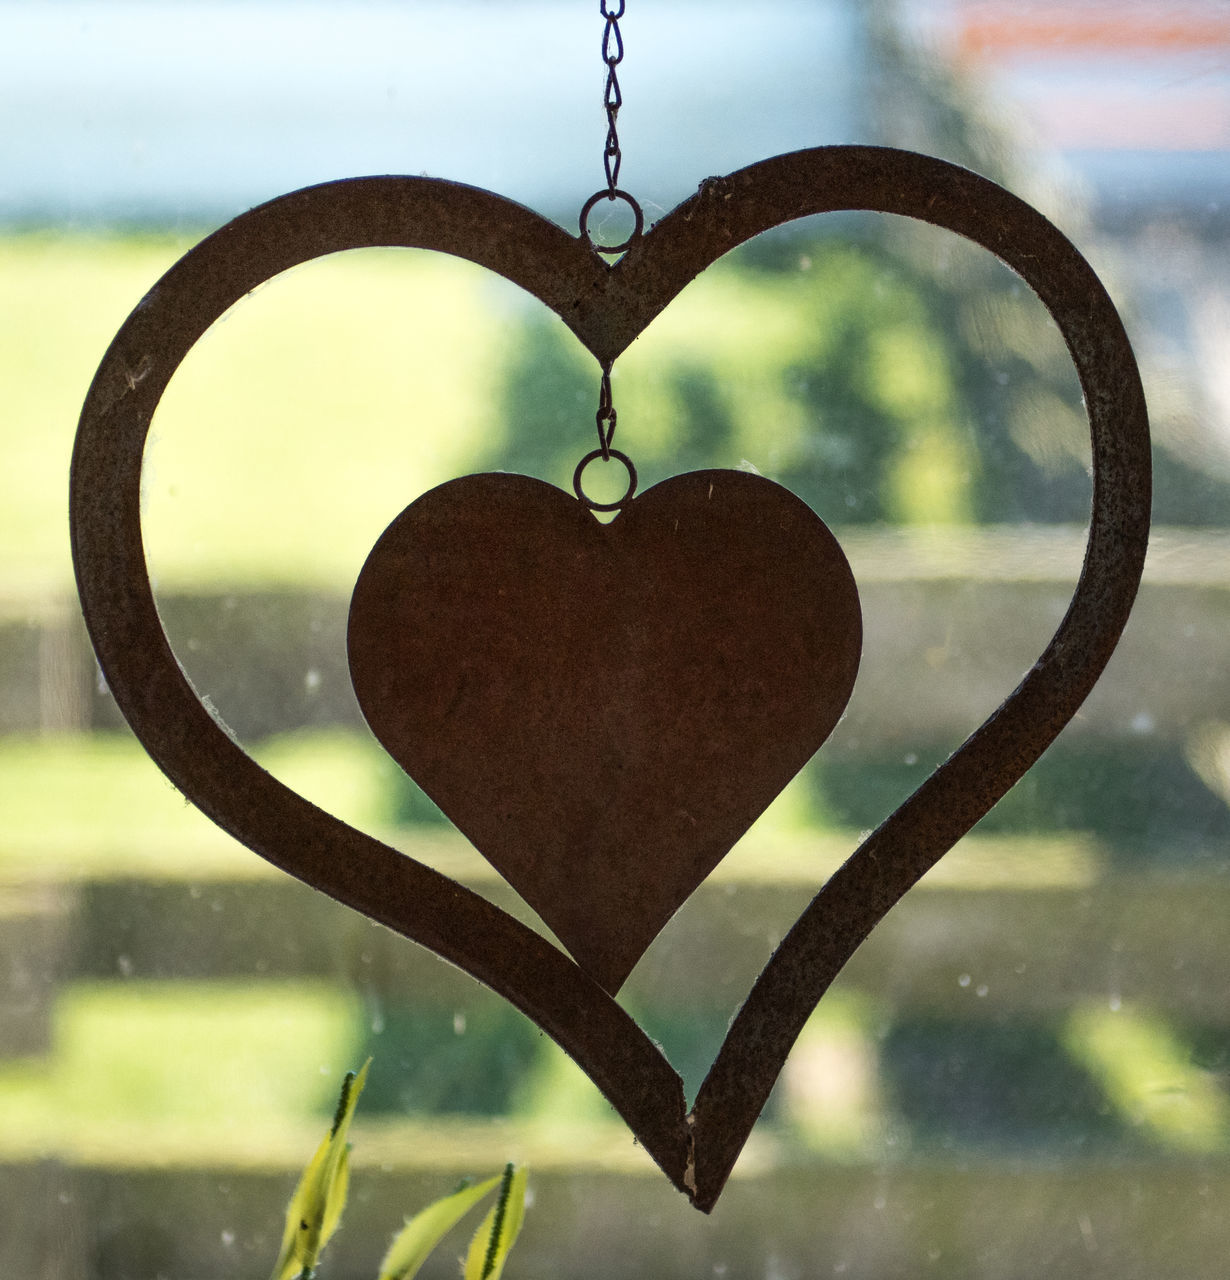 heart shape, love, no people, day, close-up, hanging, focus on foreground, outdoors, water, sky